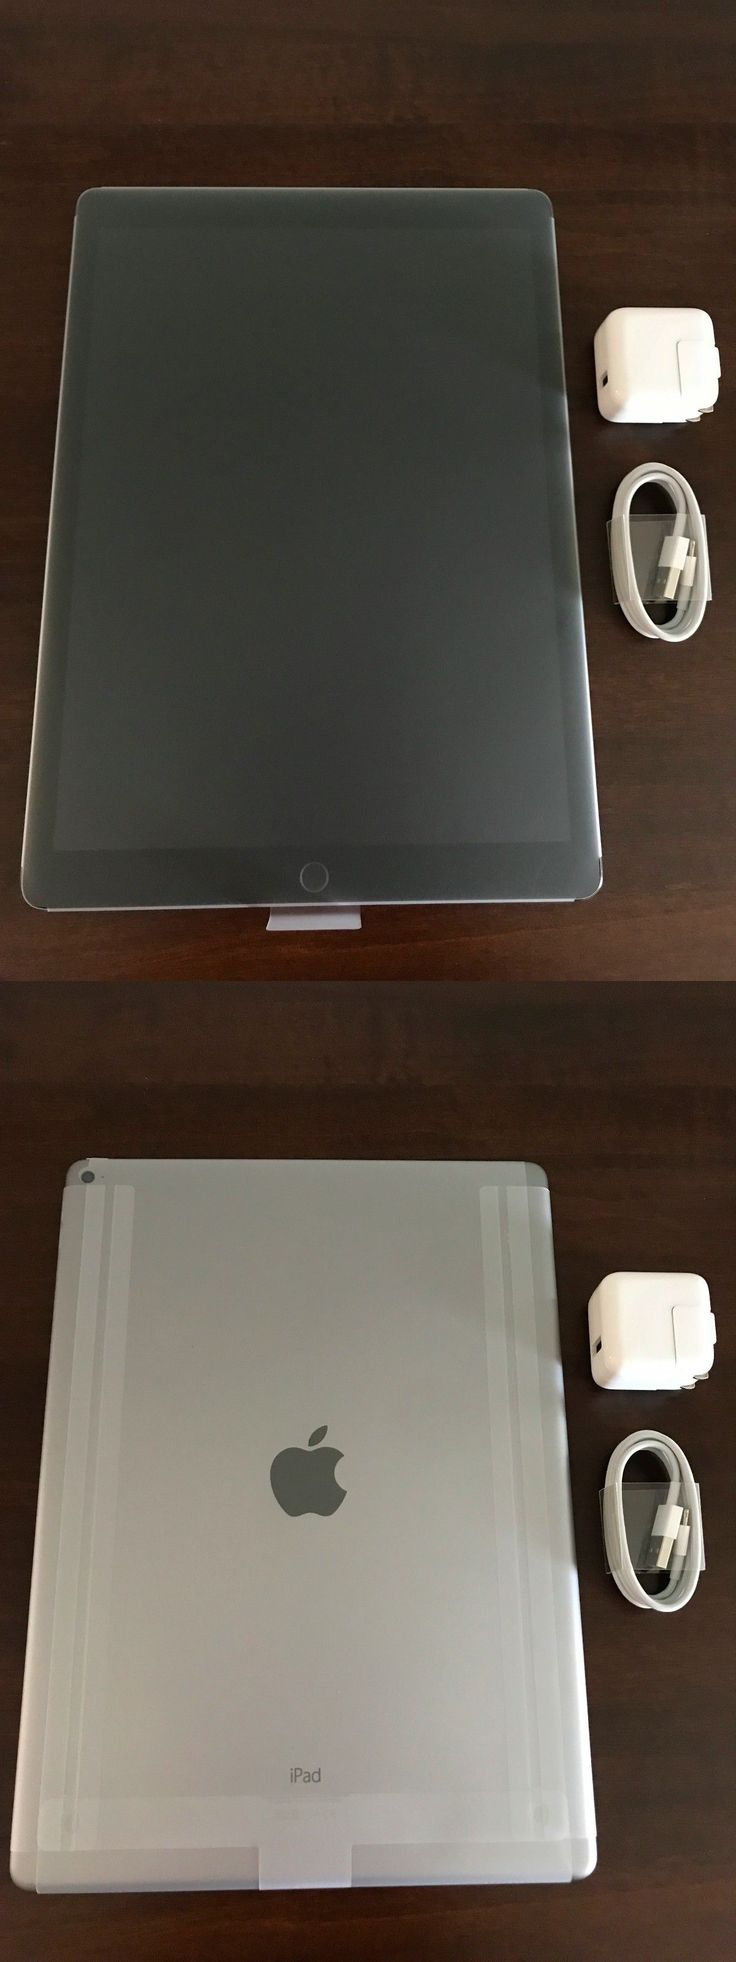 Computers Tablets Networking: New Apple Ipad Pro 12.9 128Gb Wi-Fi Space Gray Ios Touch Screen 1St Generation -> BUY IT NOW ONLY: $640 on eBay!